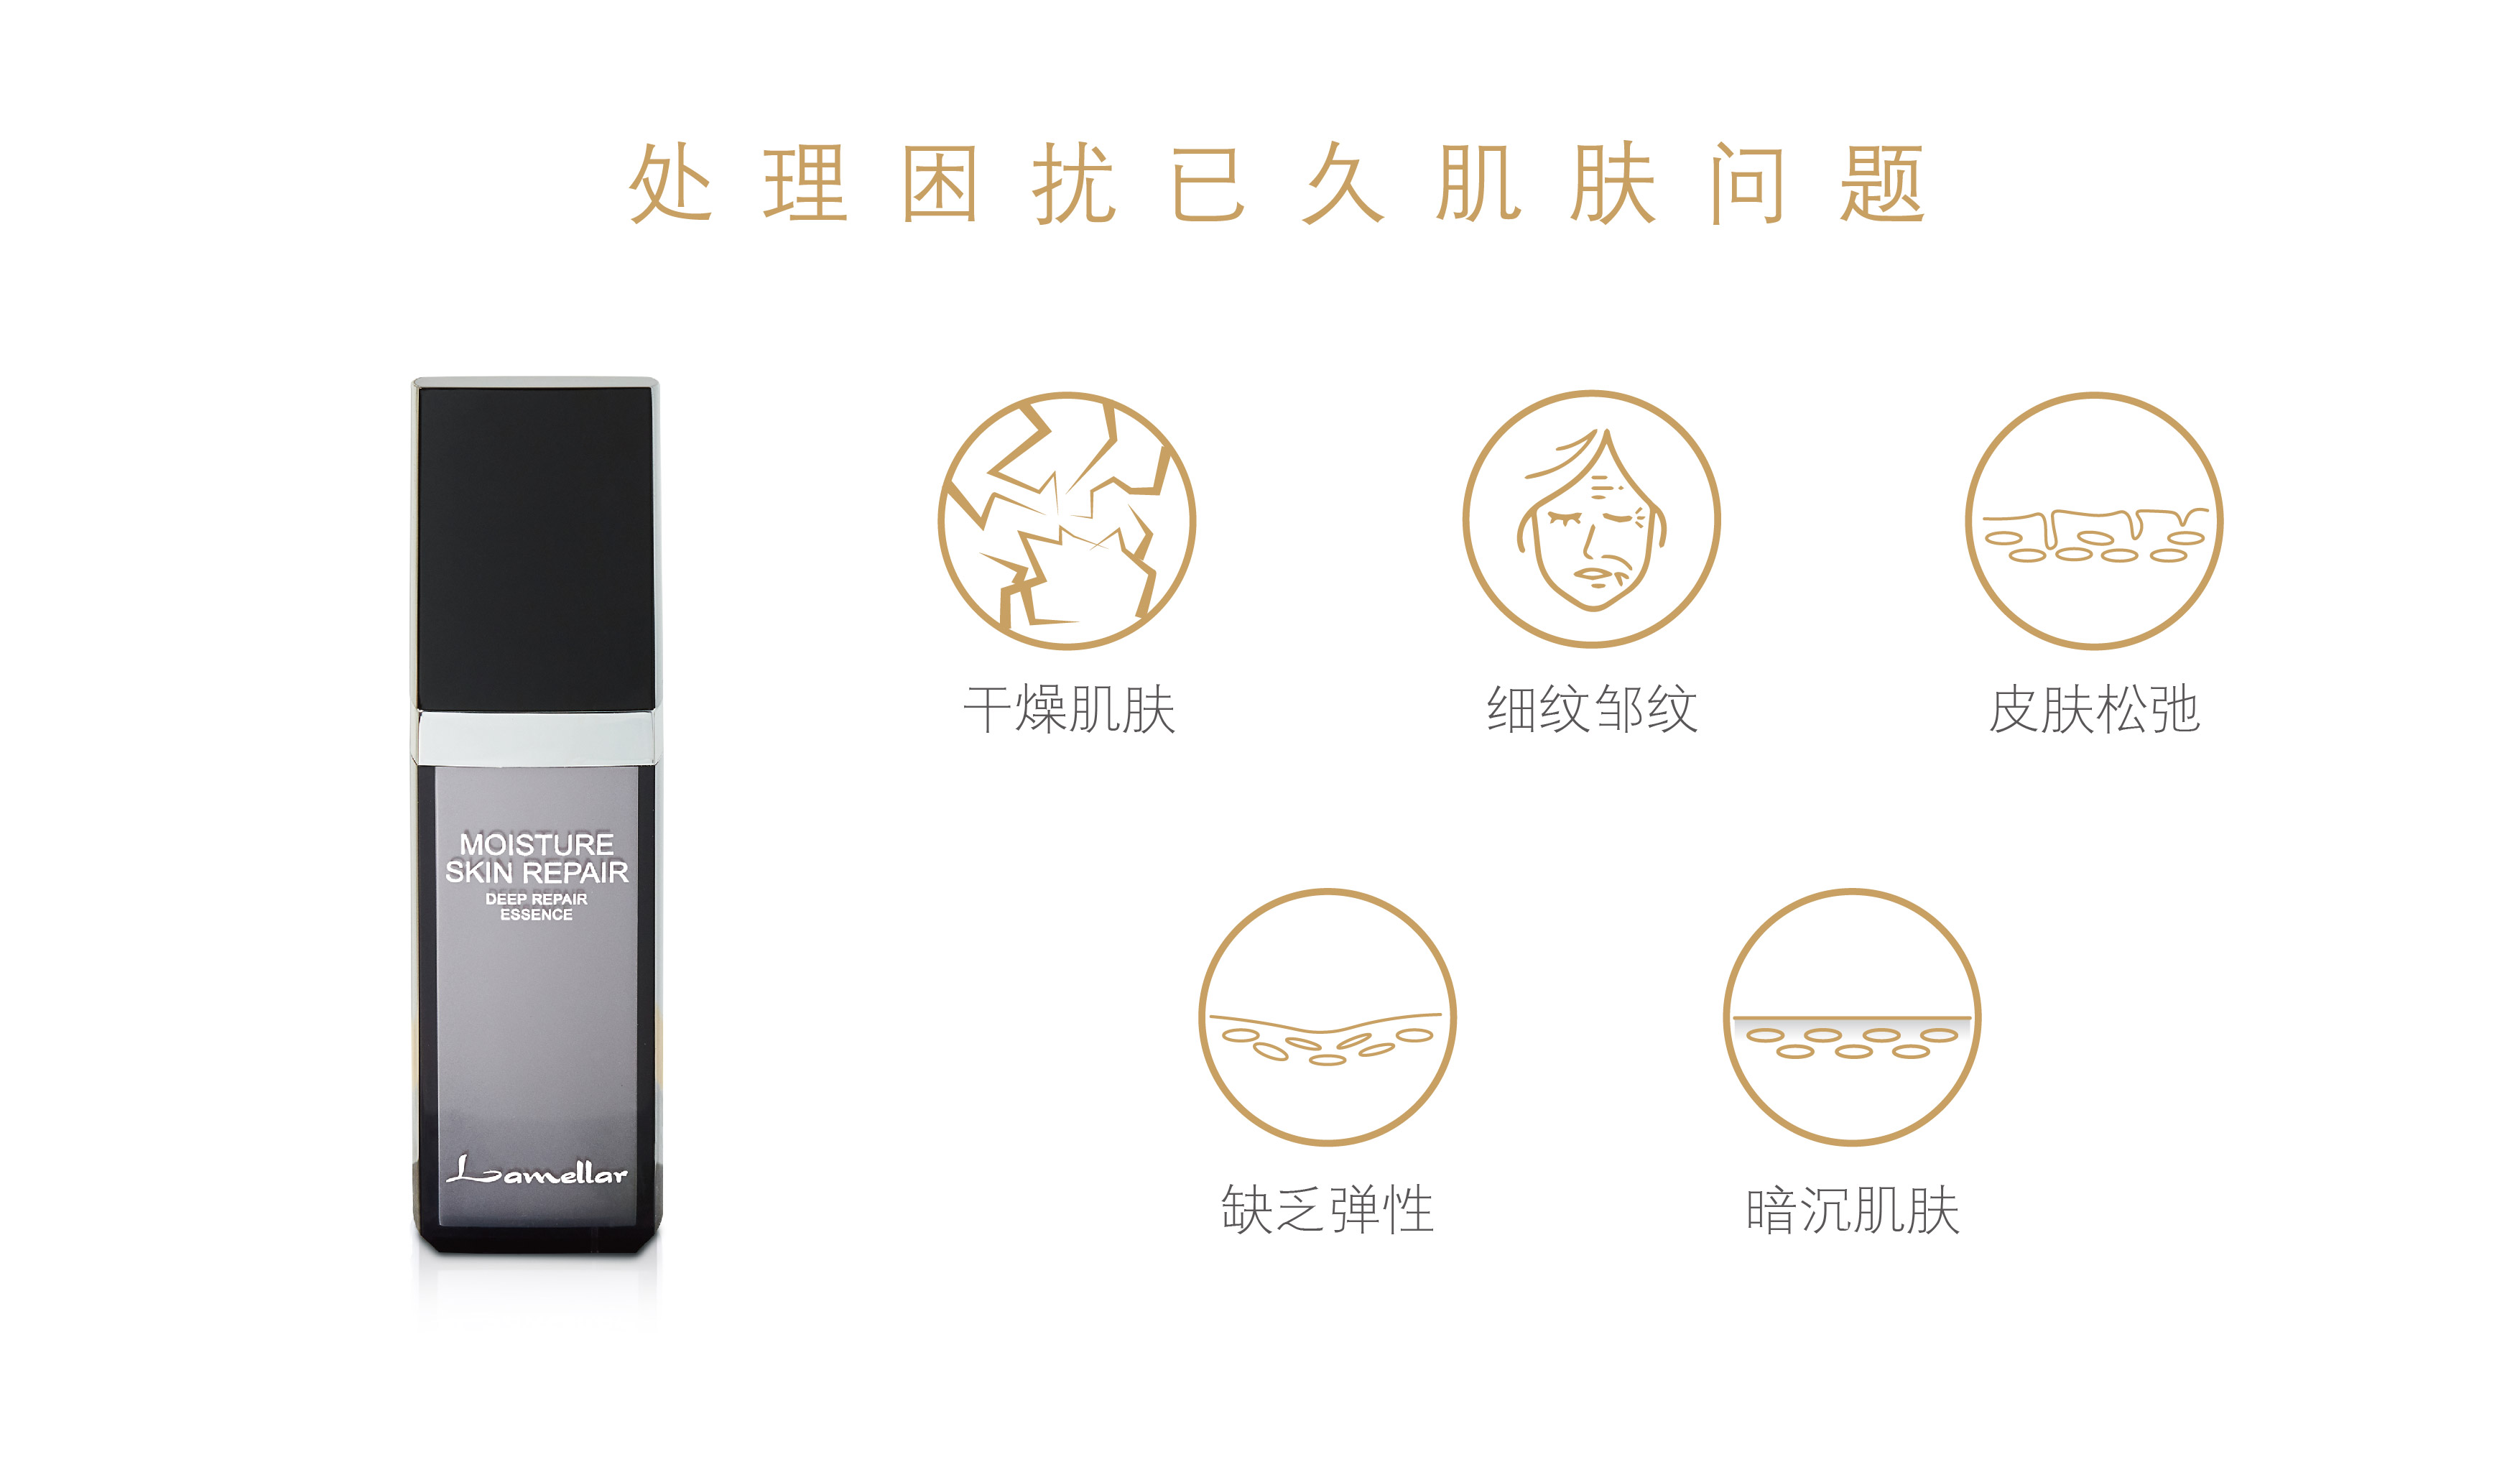 γPGA Moisturizing Skin Repair Serum-zh-05.jpg